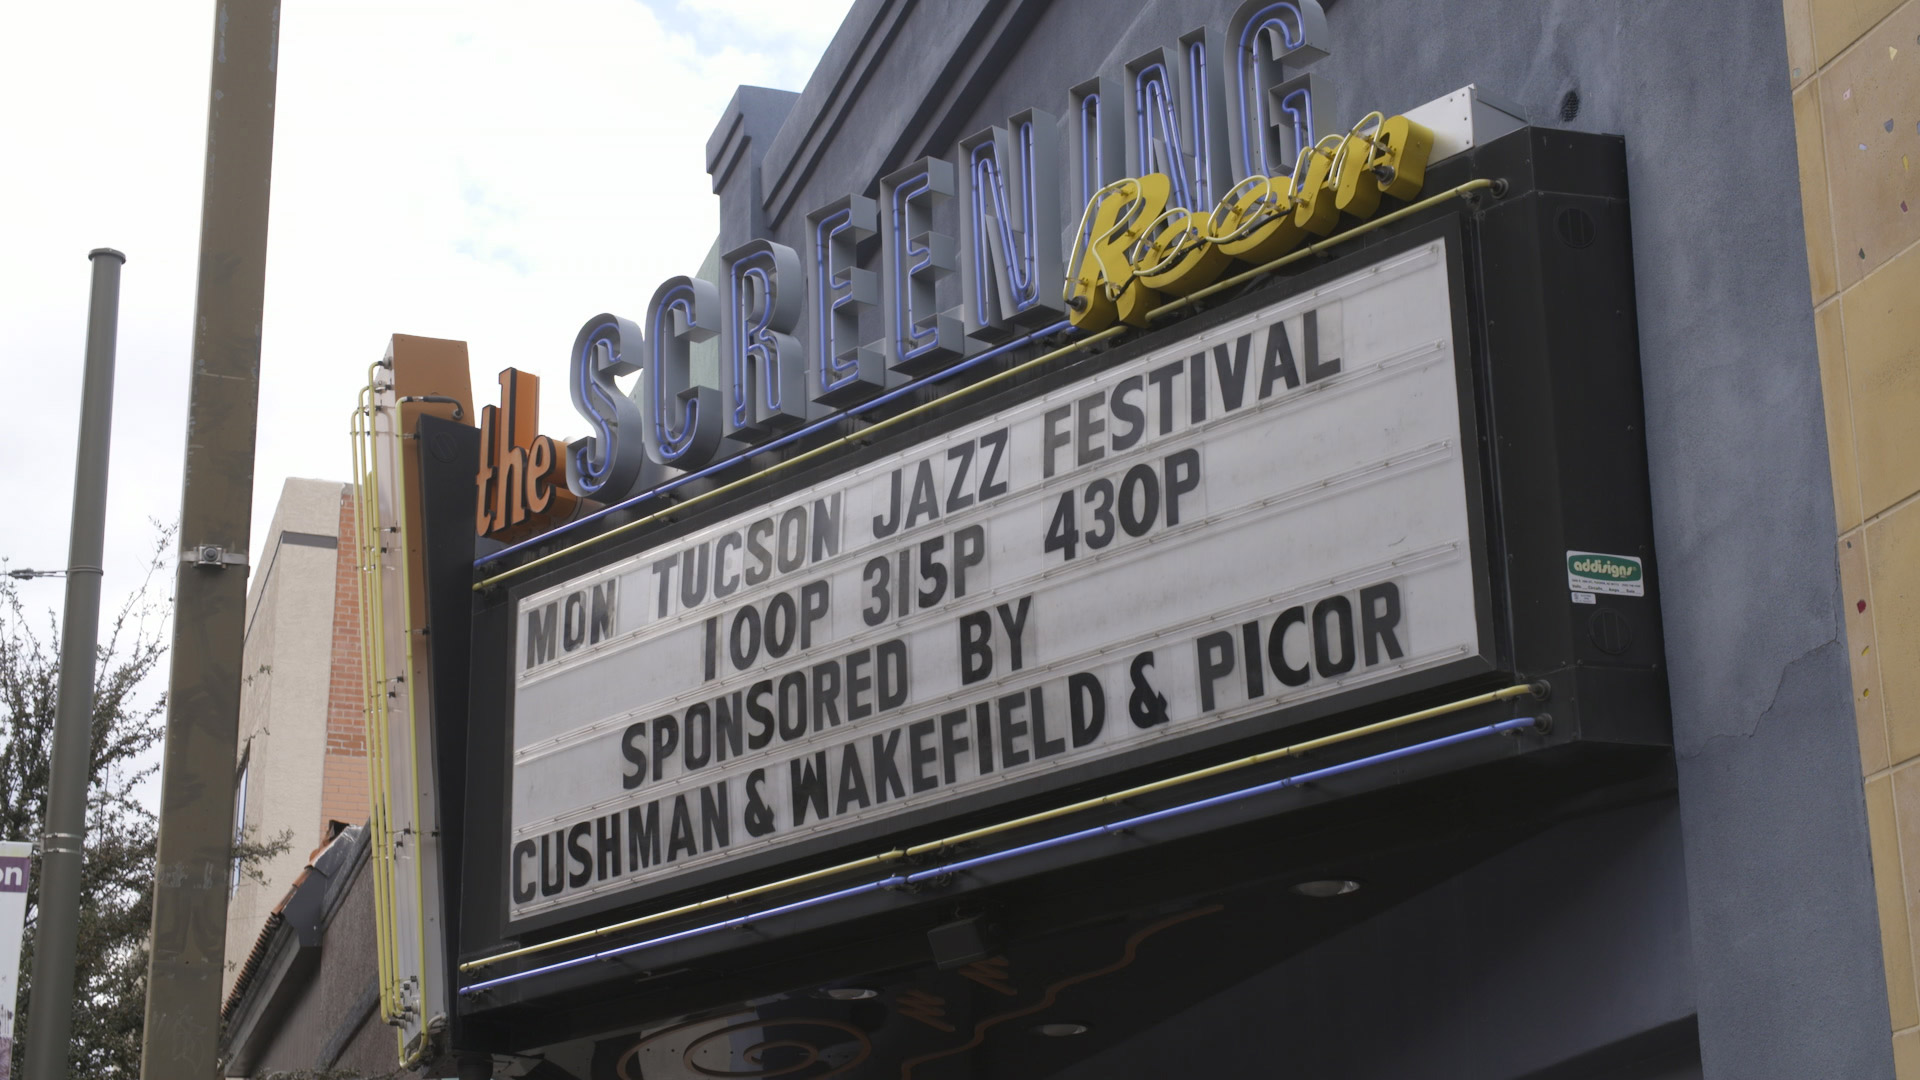 A marquee advertising the Tucson Jazz Festival, 2017.